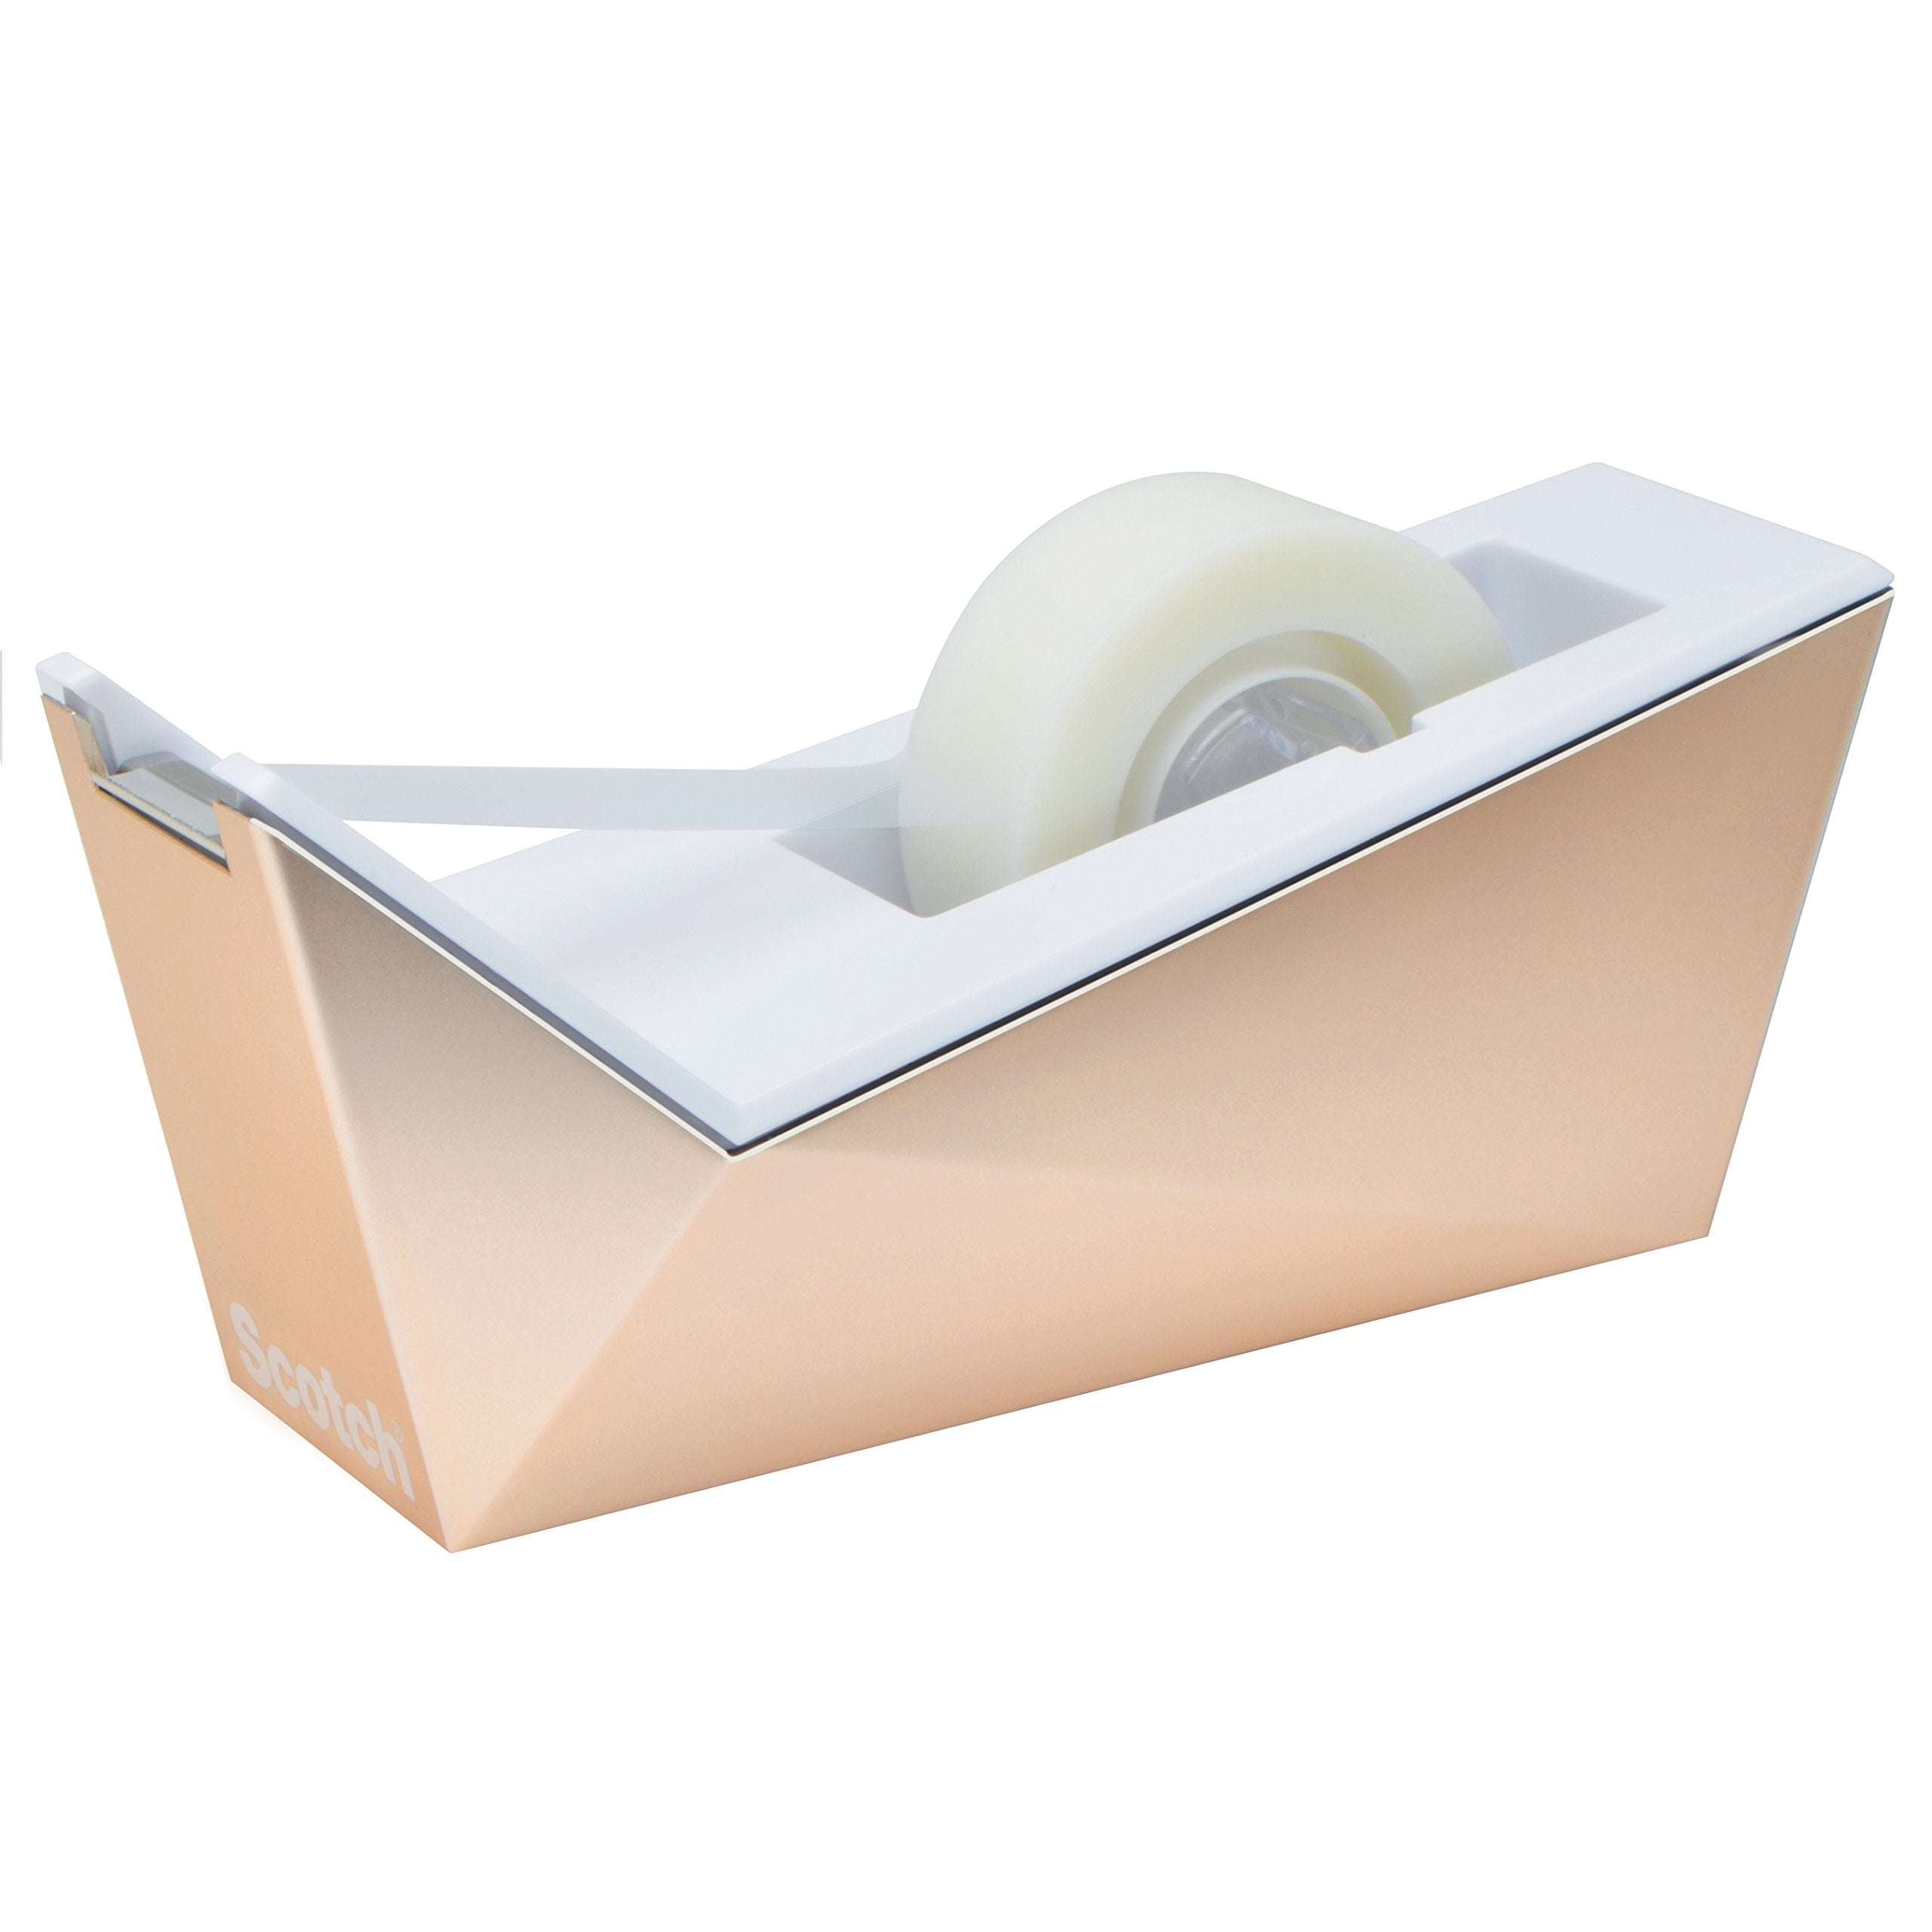 Facet Design Copper Tape Dispenser